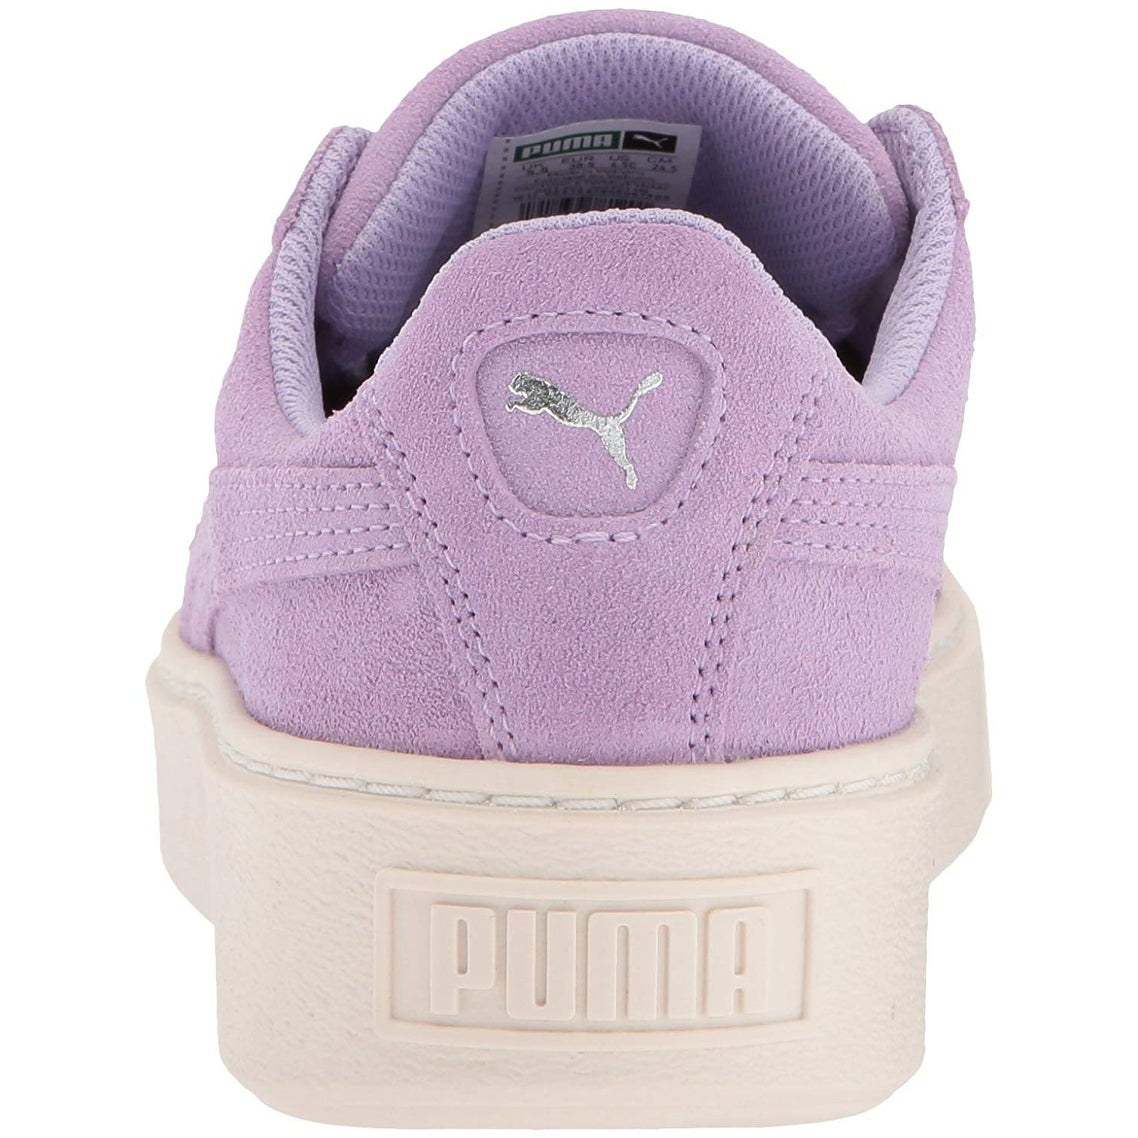 b8798e9c40c368 Shop Kids Puma Girls Kids  Suede Platform Glam Sneaker Low Top Lace Up  Fashion Sne... - Free Shipping On Orders Over  45 - - 25573276